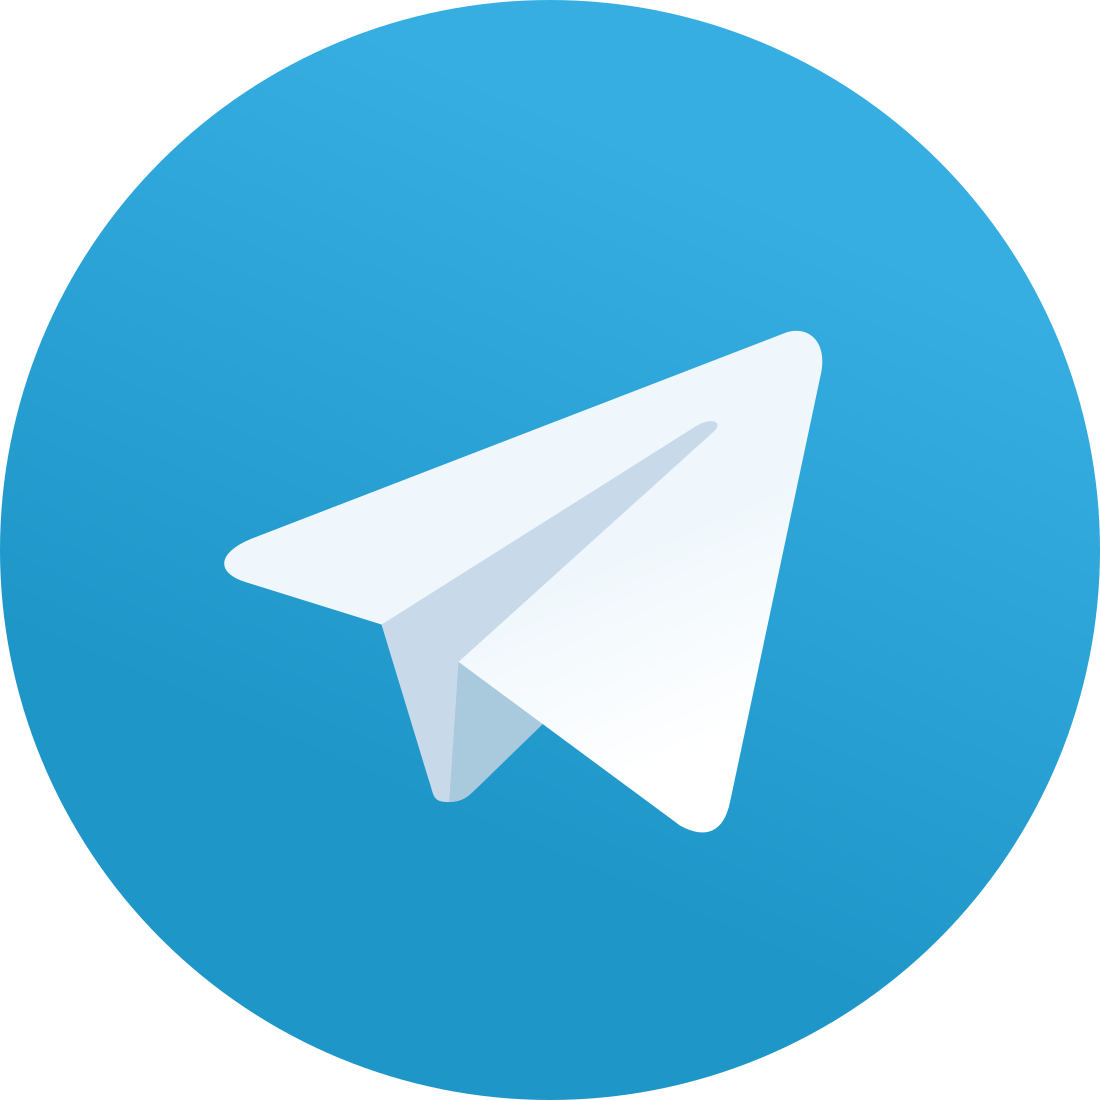 telegram logo 3 - Telegram Logo